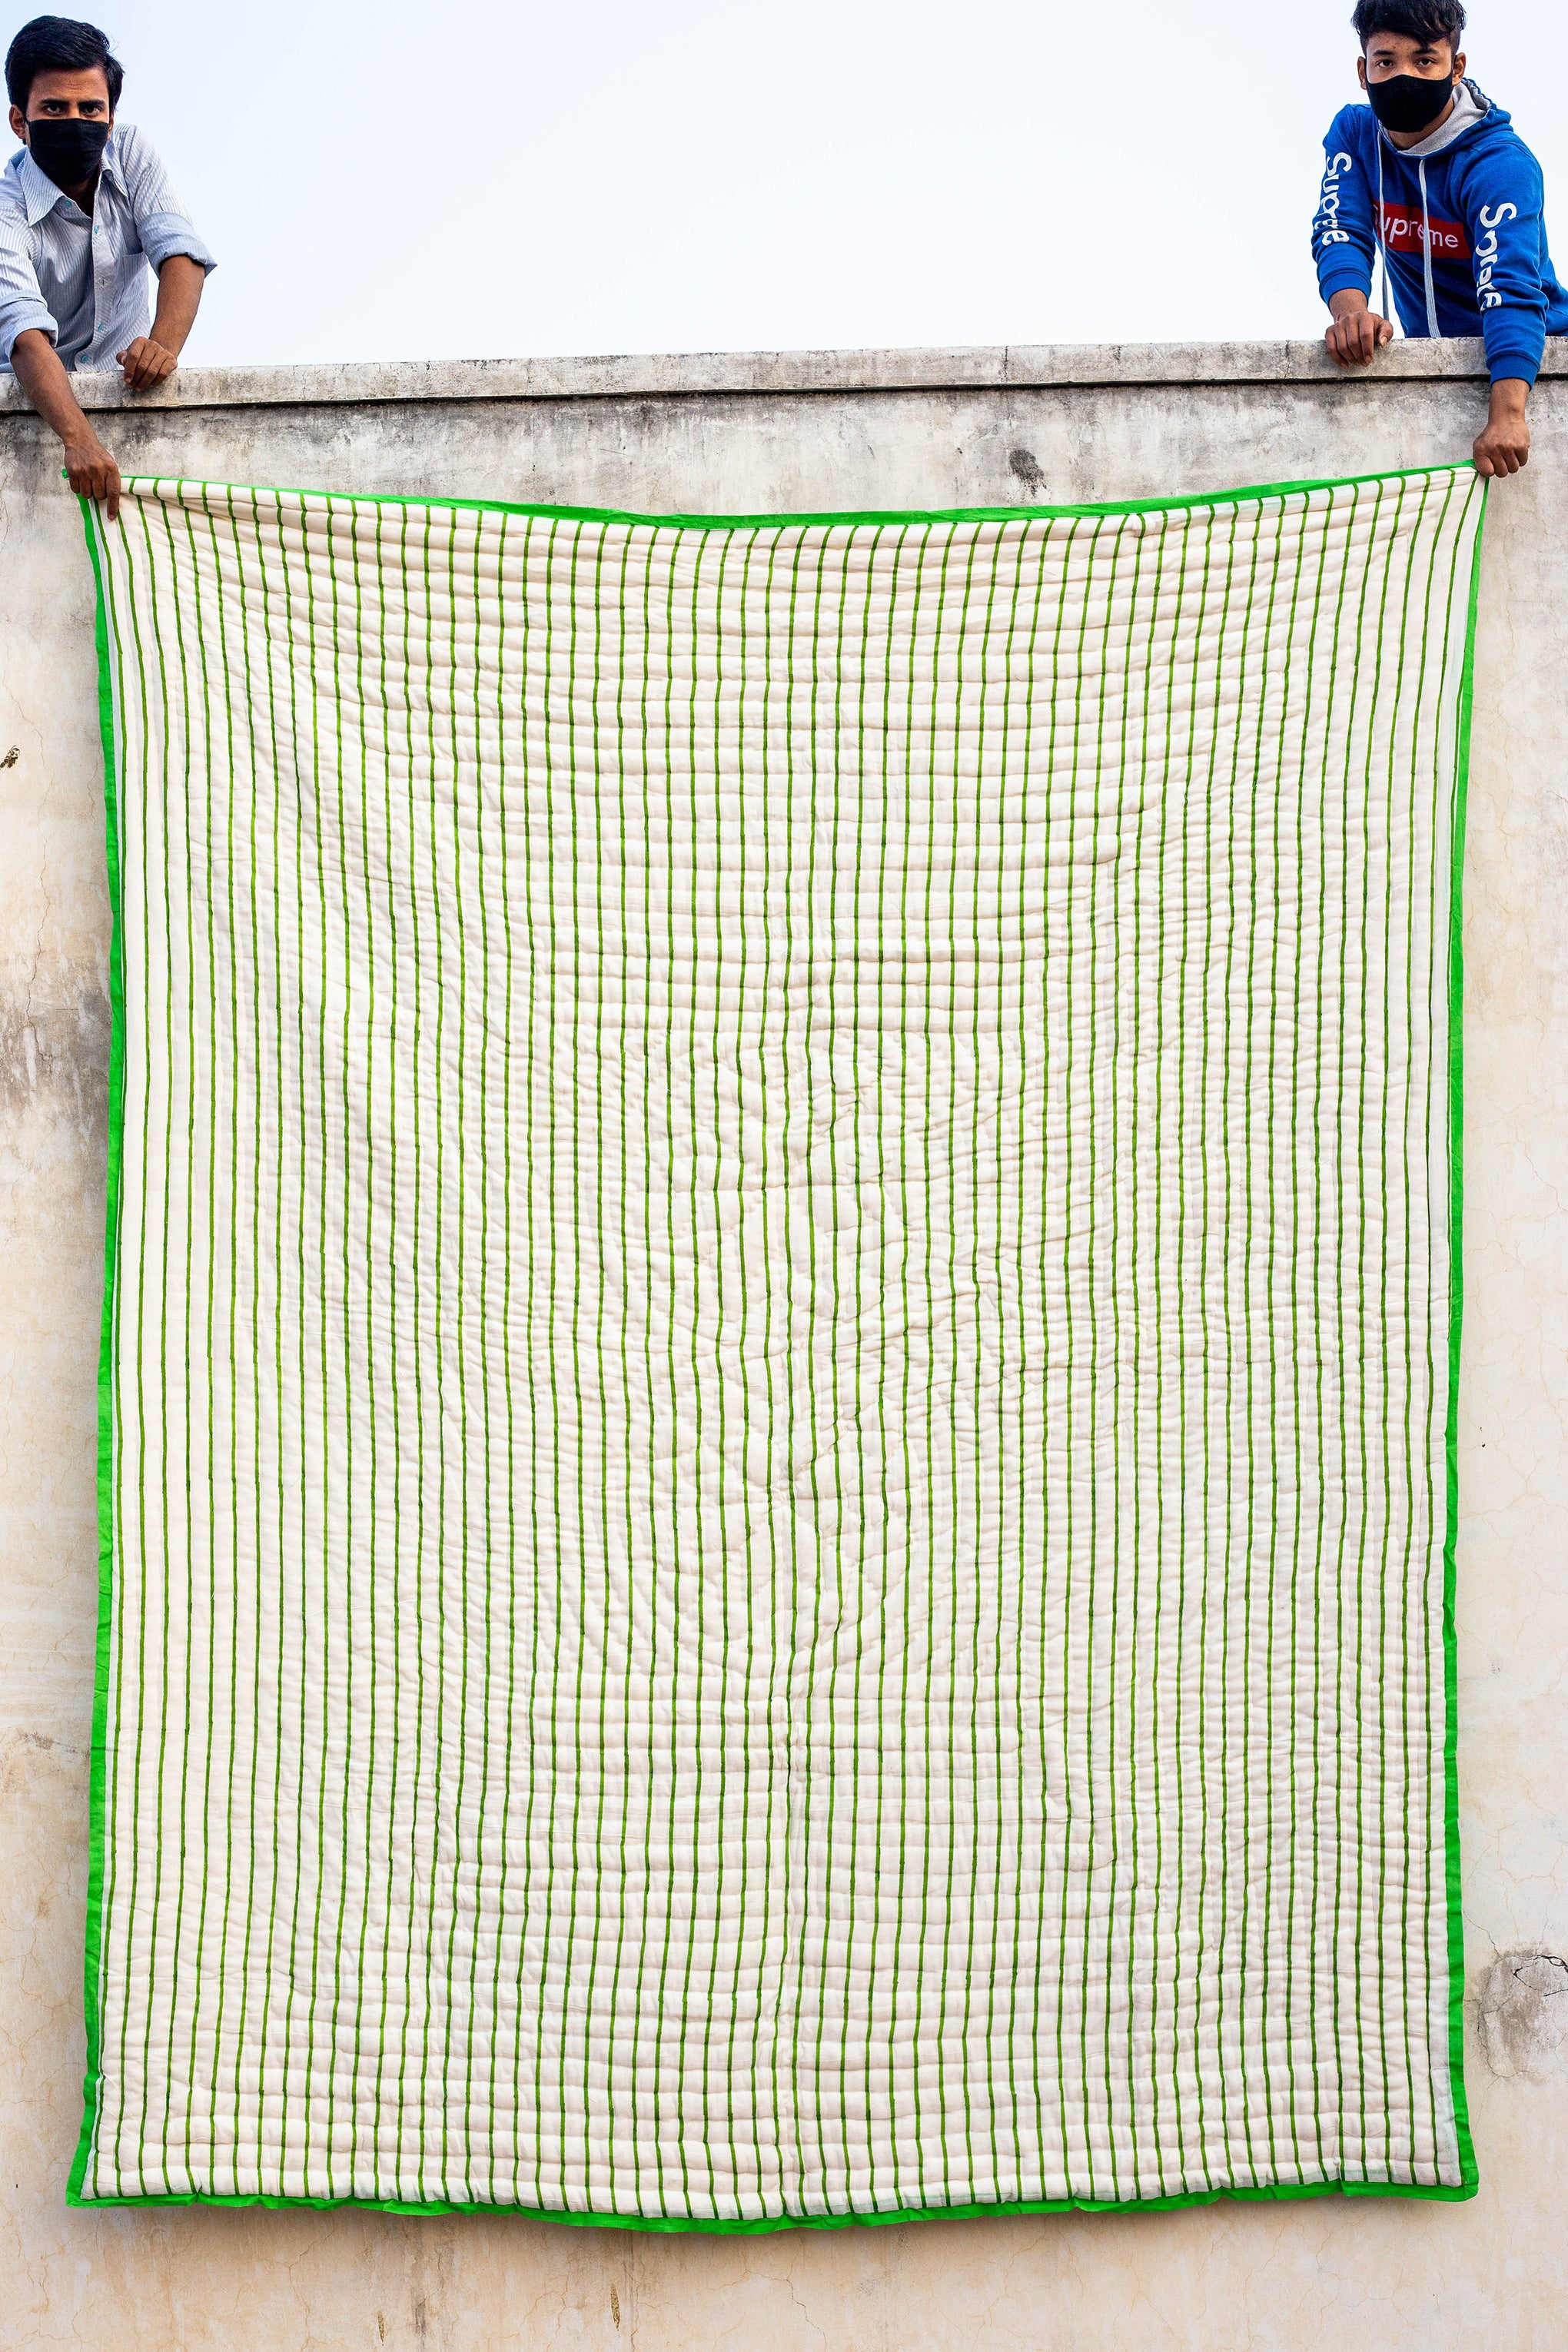 All New Roysha 2021 Queen Quilt Collection,100 Percent Handmade, Hand Block printed Quilt, Jaipuri Quilt, Hand Quilted, Green Checks